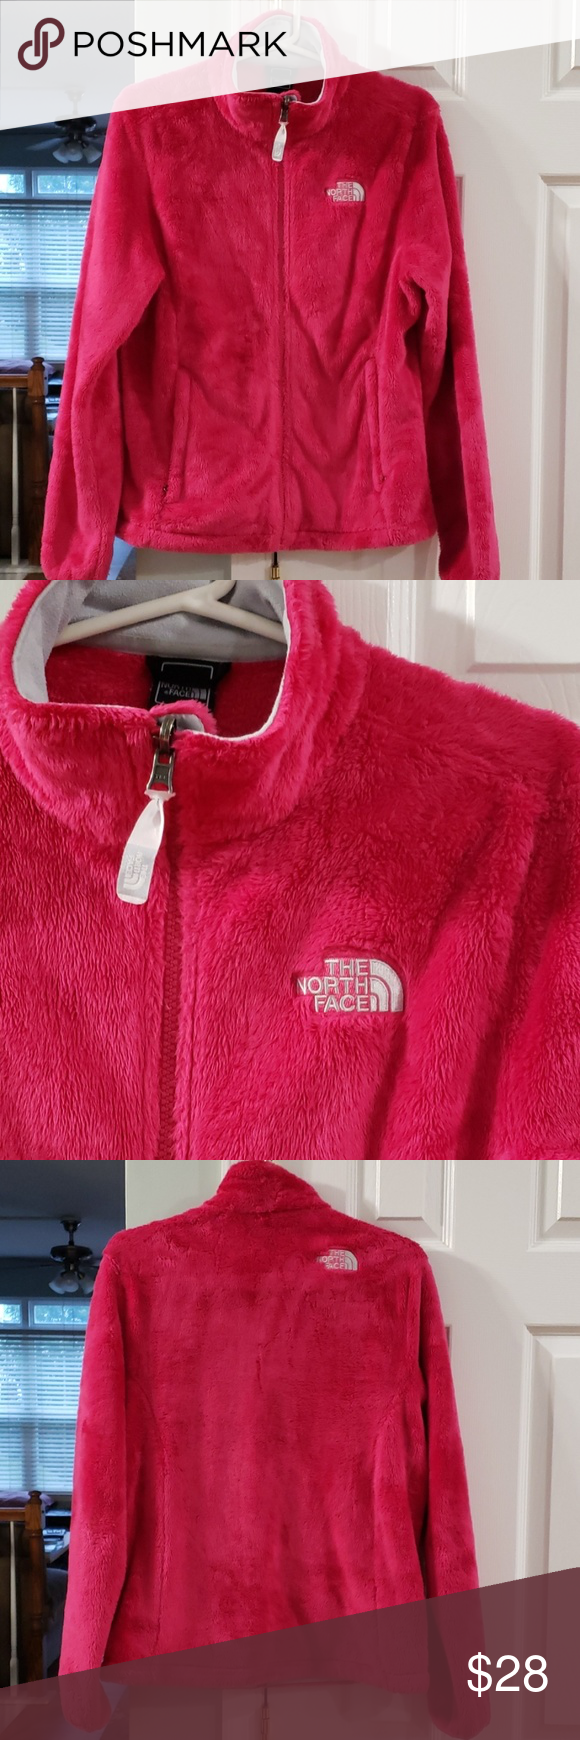 The North Face Fuzzy Pink Jacket Pink Jacket The North Face Clothes Design [ 1740 x 580 Pixel ]